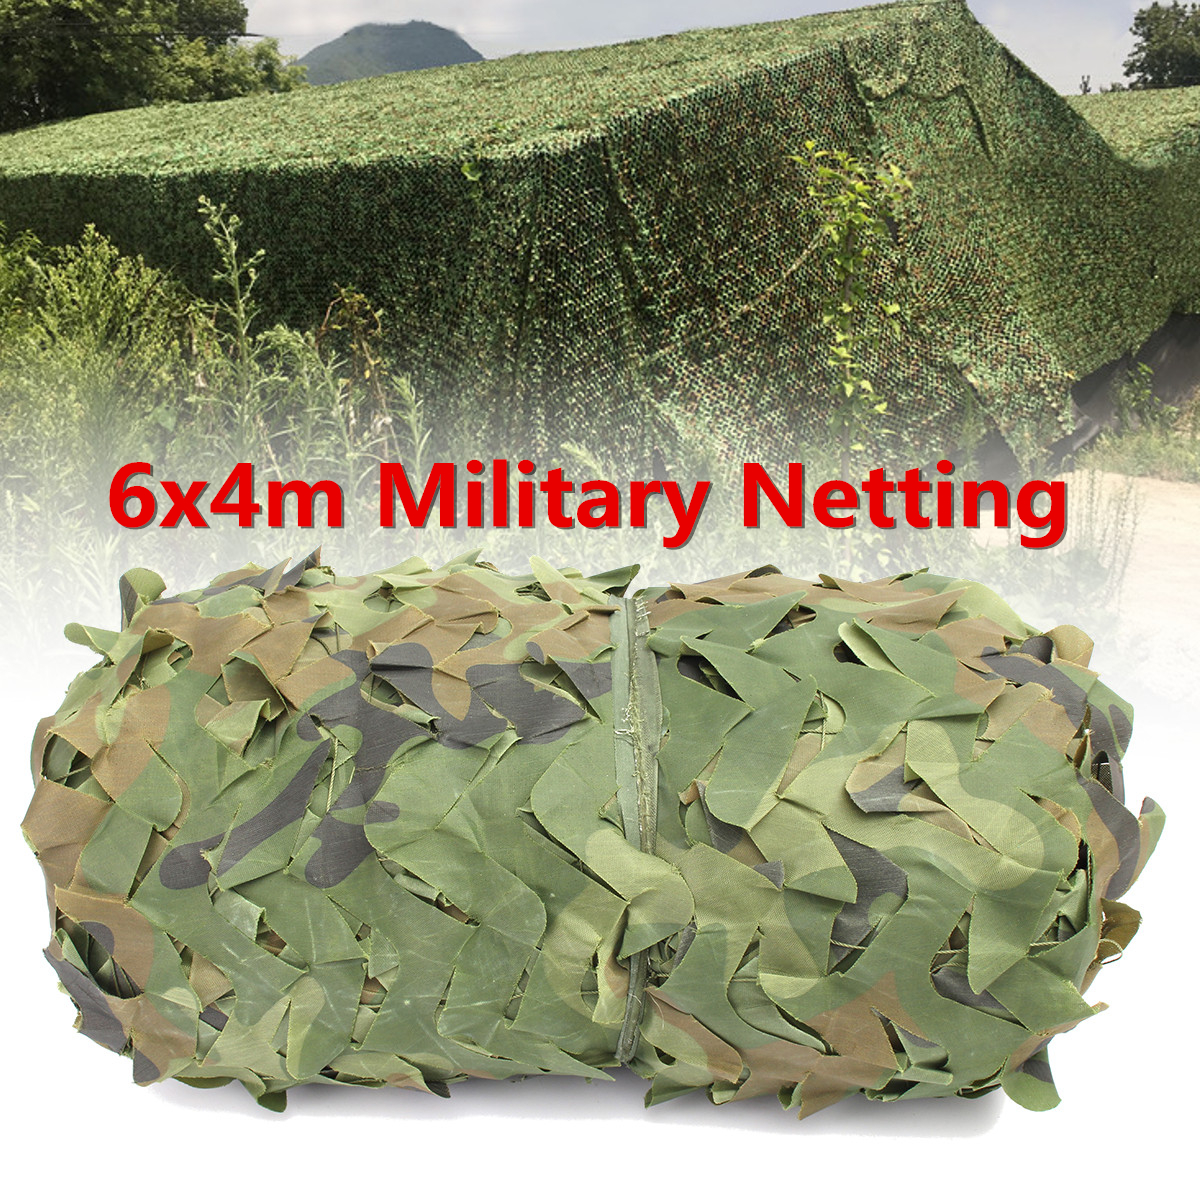 6X4m Outdoor Desert Woodland Camouflage Netting Military Army Camo Hunting Hide Camp Cover Net Sun Shelter 5 colors military camouflage net 5x3m outdoor camo net for hunting covering camping woodlands leaves hide sun shelter car cover